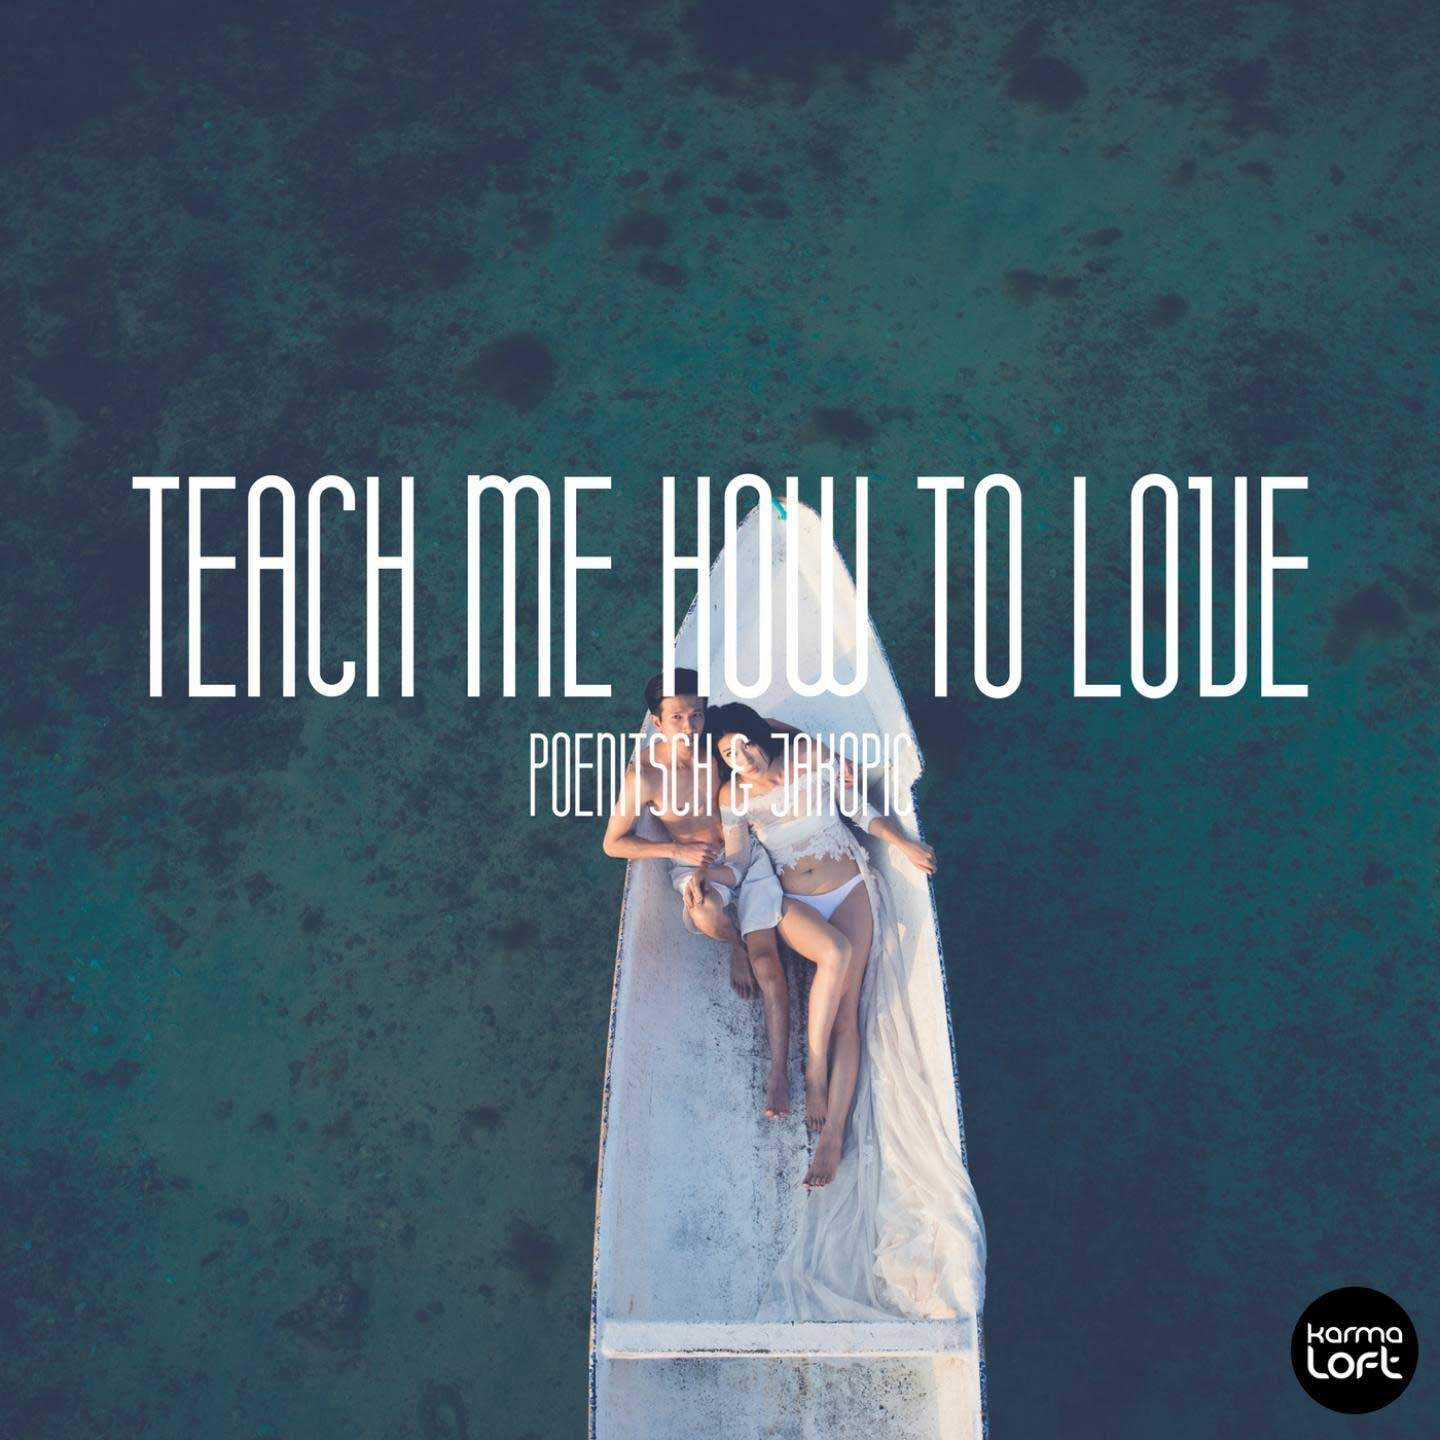 POENITSCH & JAKOPIC-Teach Me How To Love